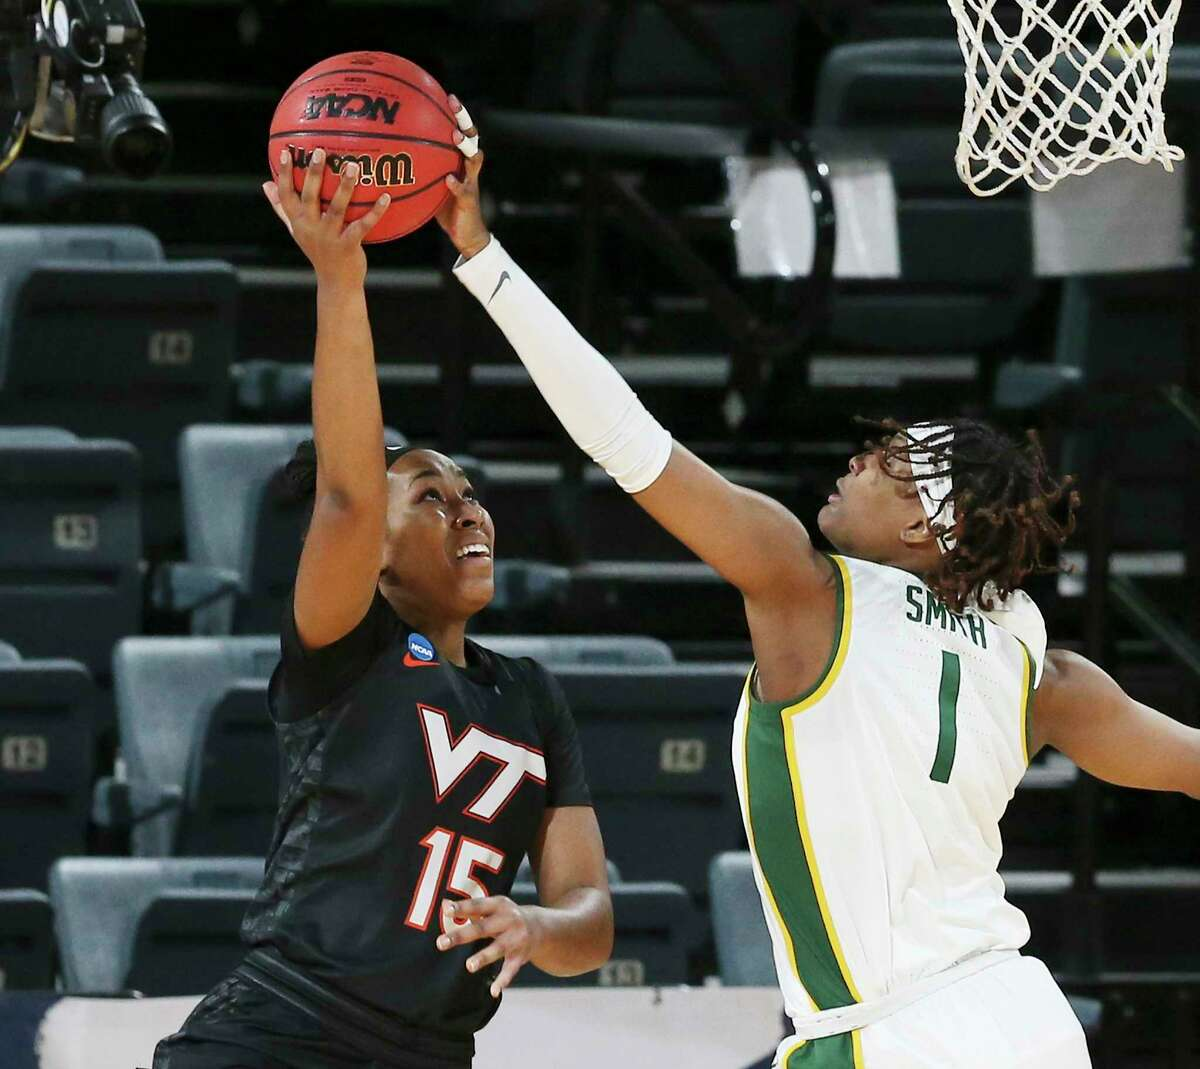 Baylor's NaLyssa Smith (01) blocks a shot by Virginia Tech's Azana Baines (15) in the second round of the 2021 NCAA Div. I Women's Basketball Championship at Greehey Arena on Tuesday, Mar. 23, 2021.